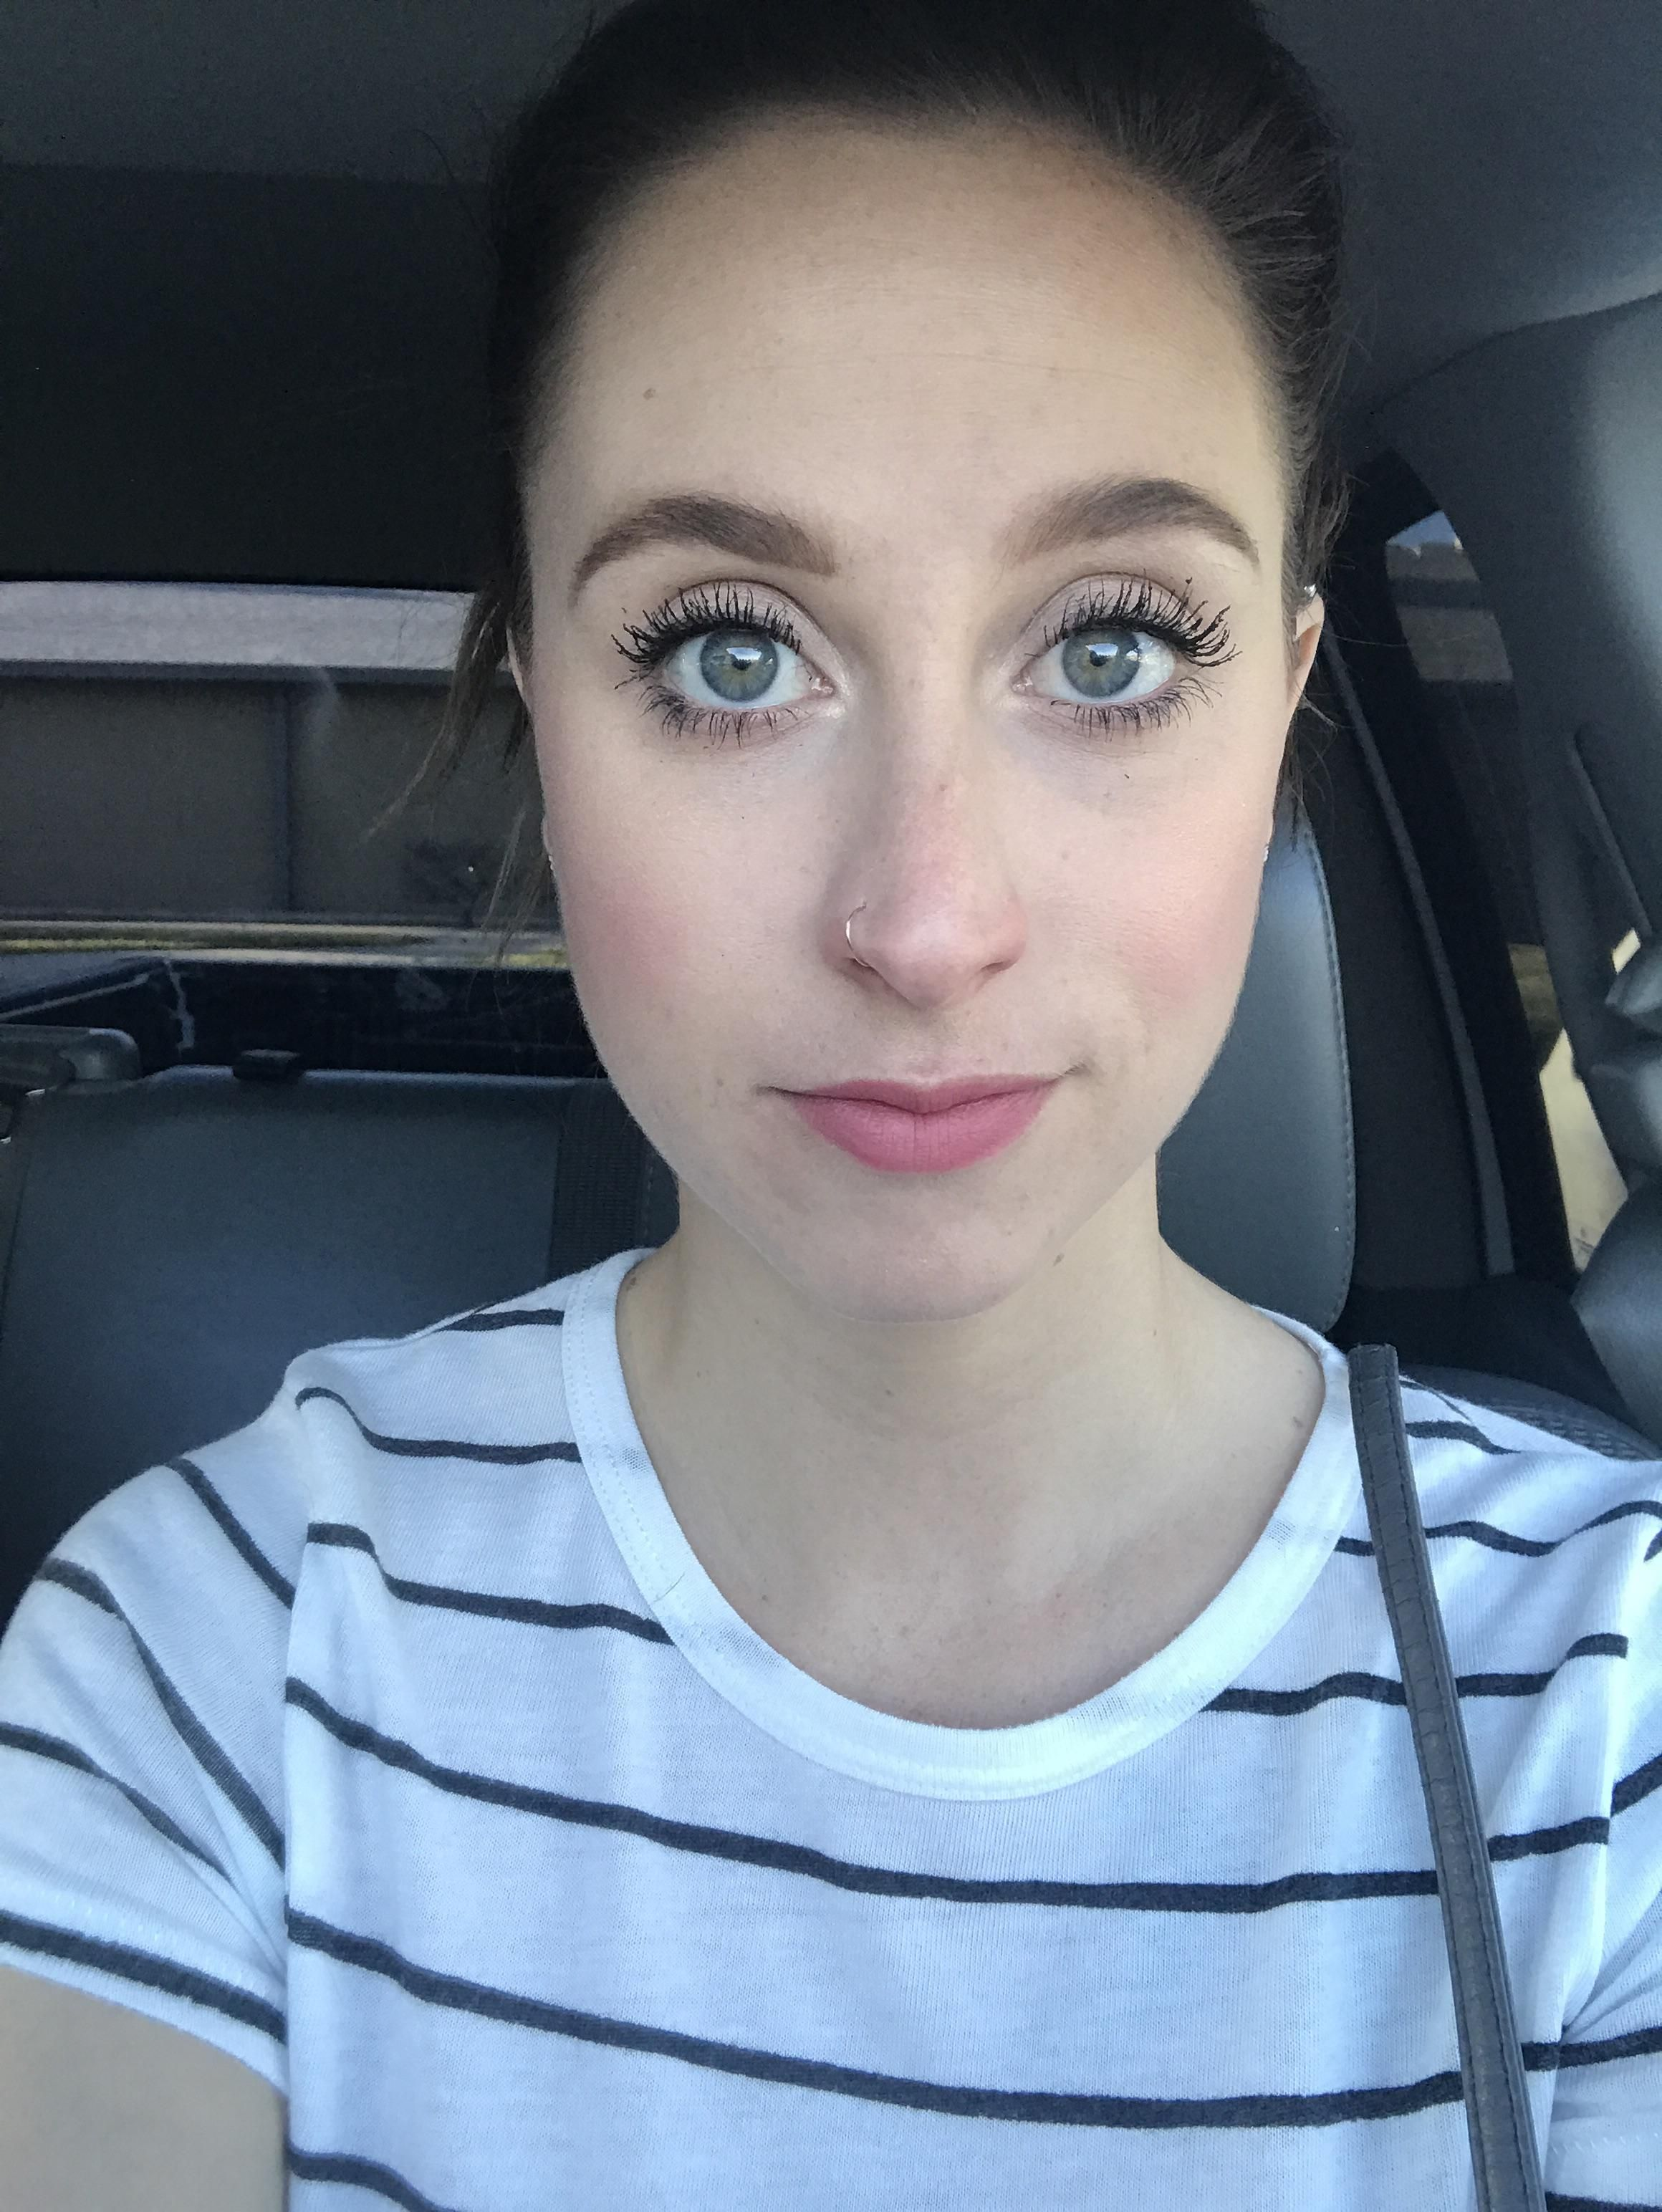 Trying to create an everyday look CCW , please! Will post